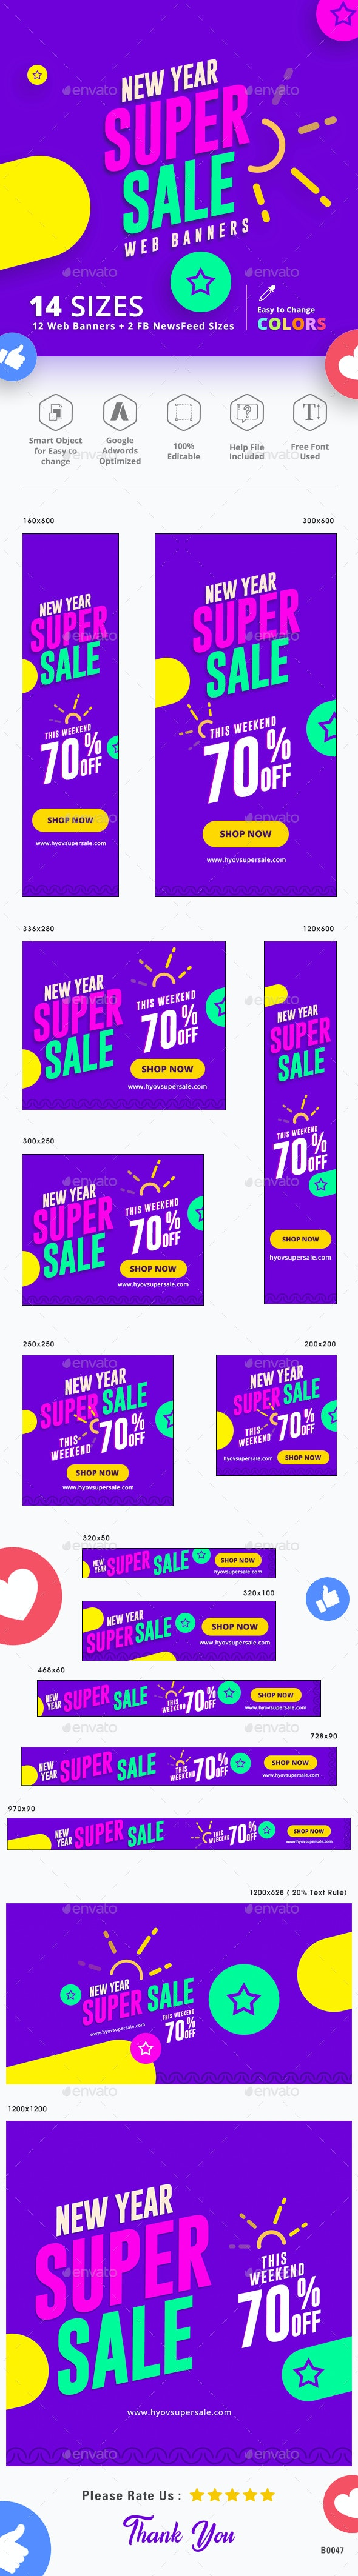 New Year Sale Web Banner Set - Banners & Ads Web Elements